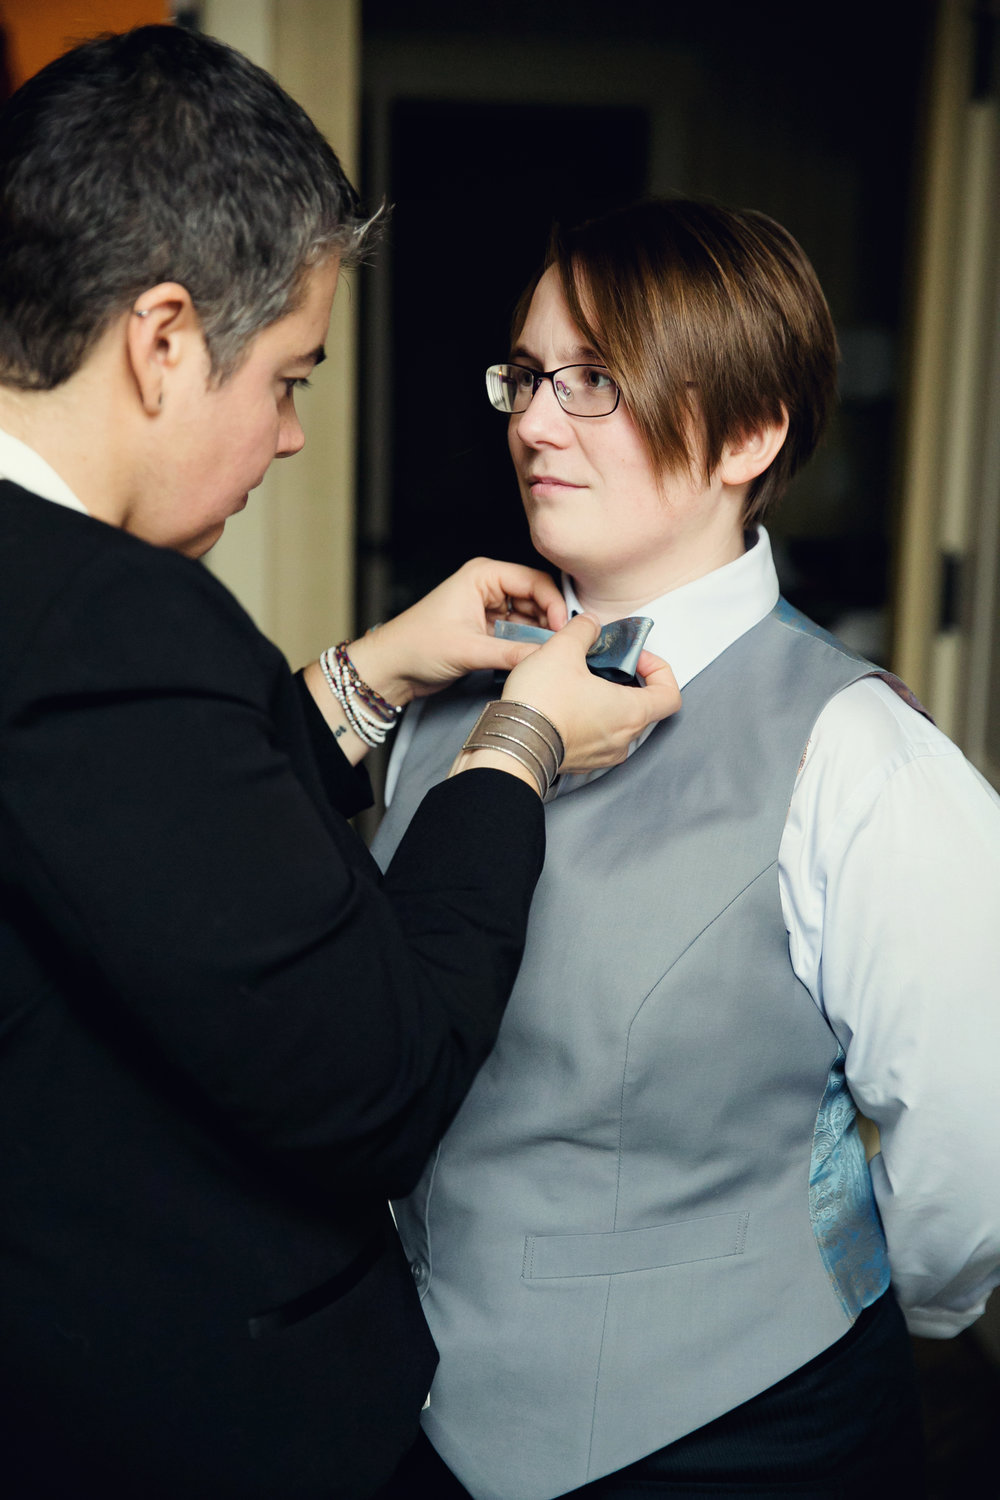 Tying bowtie for bride